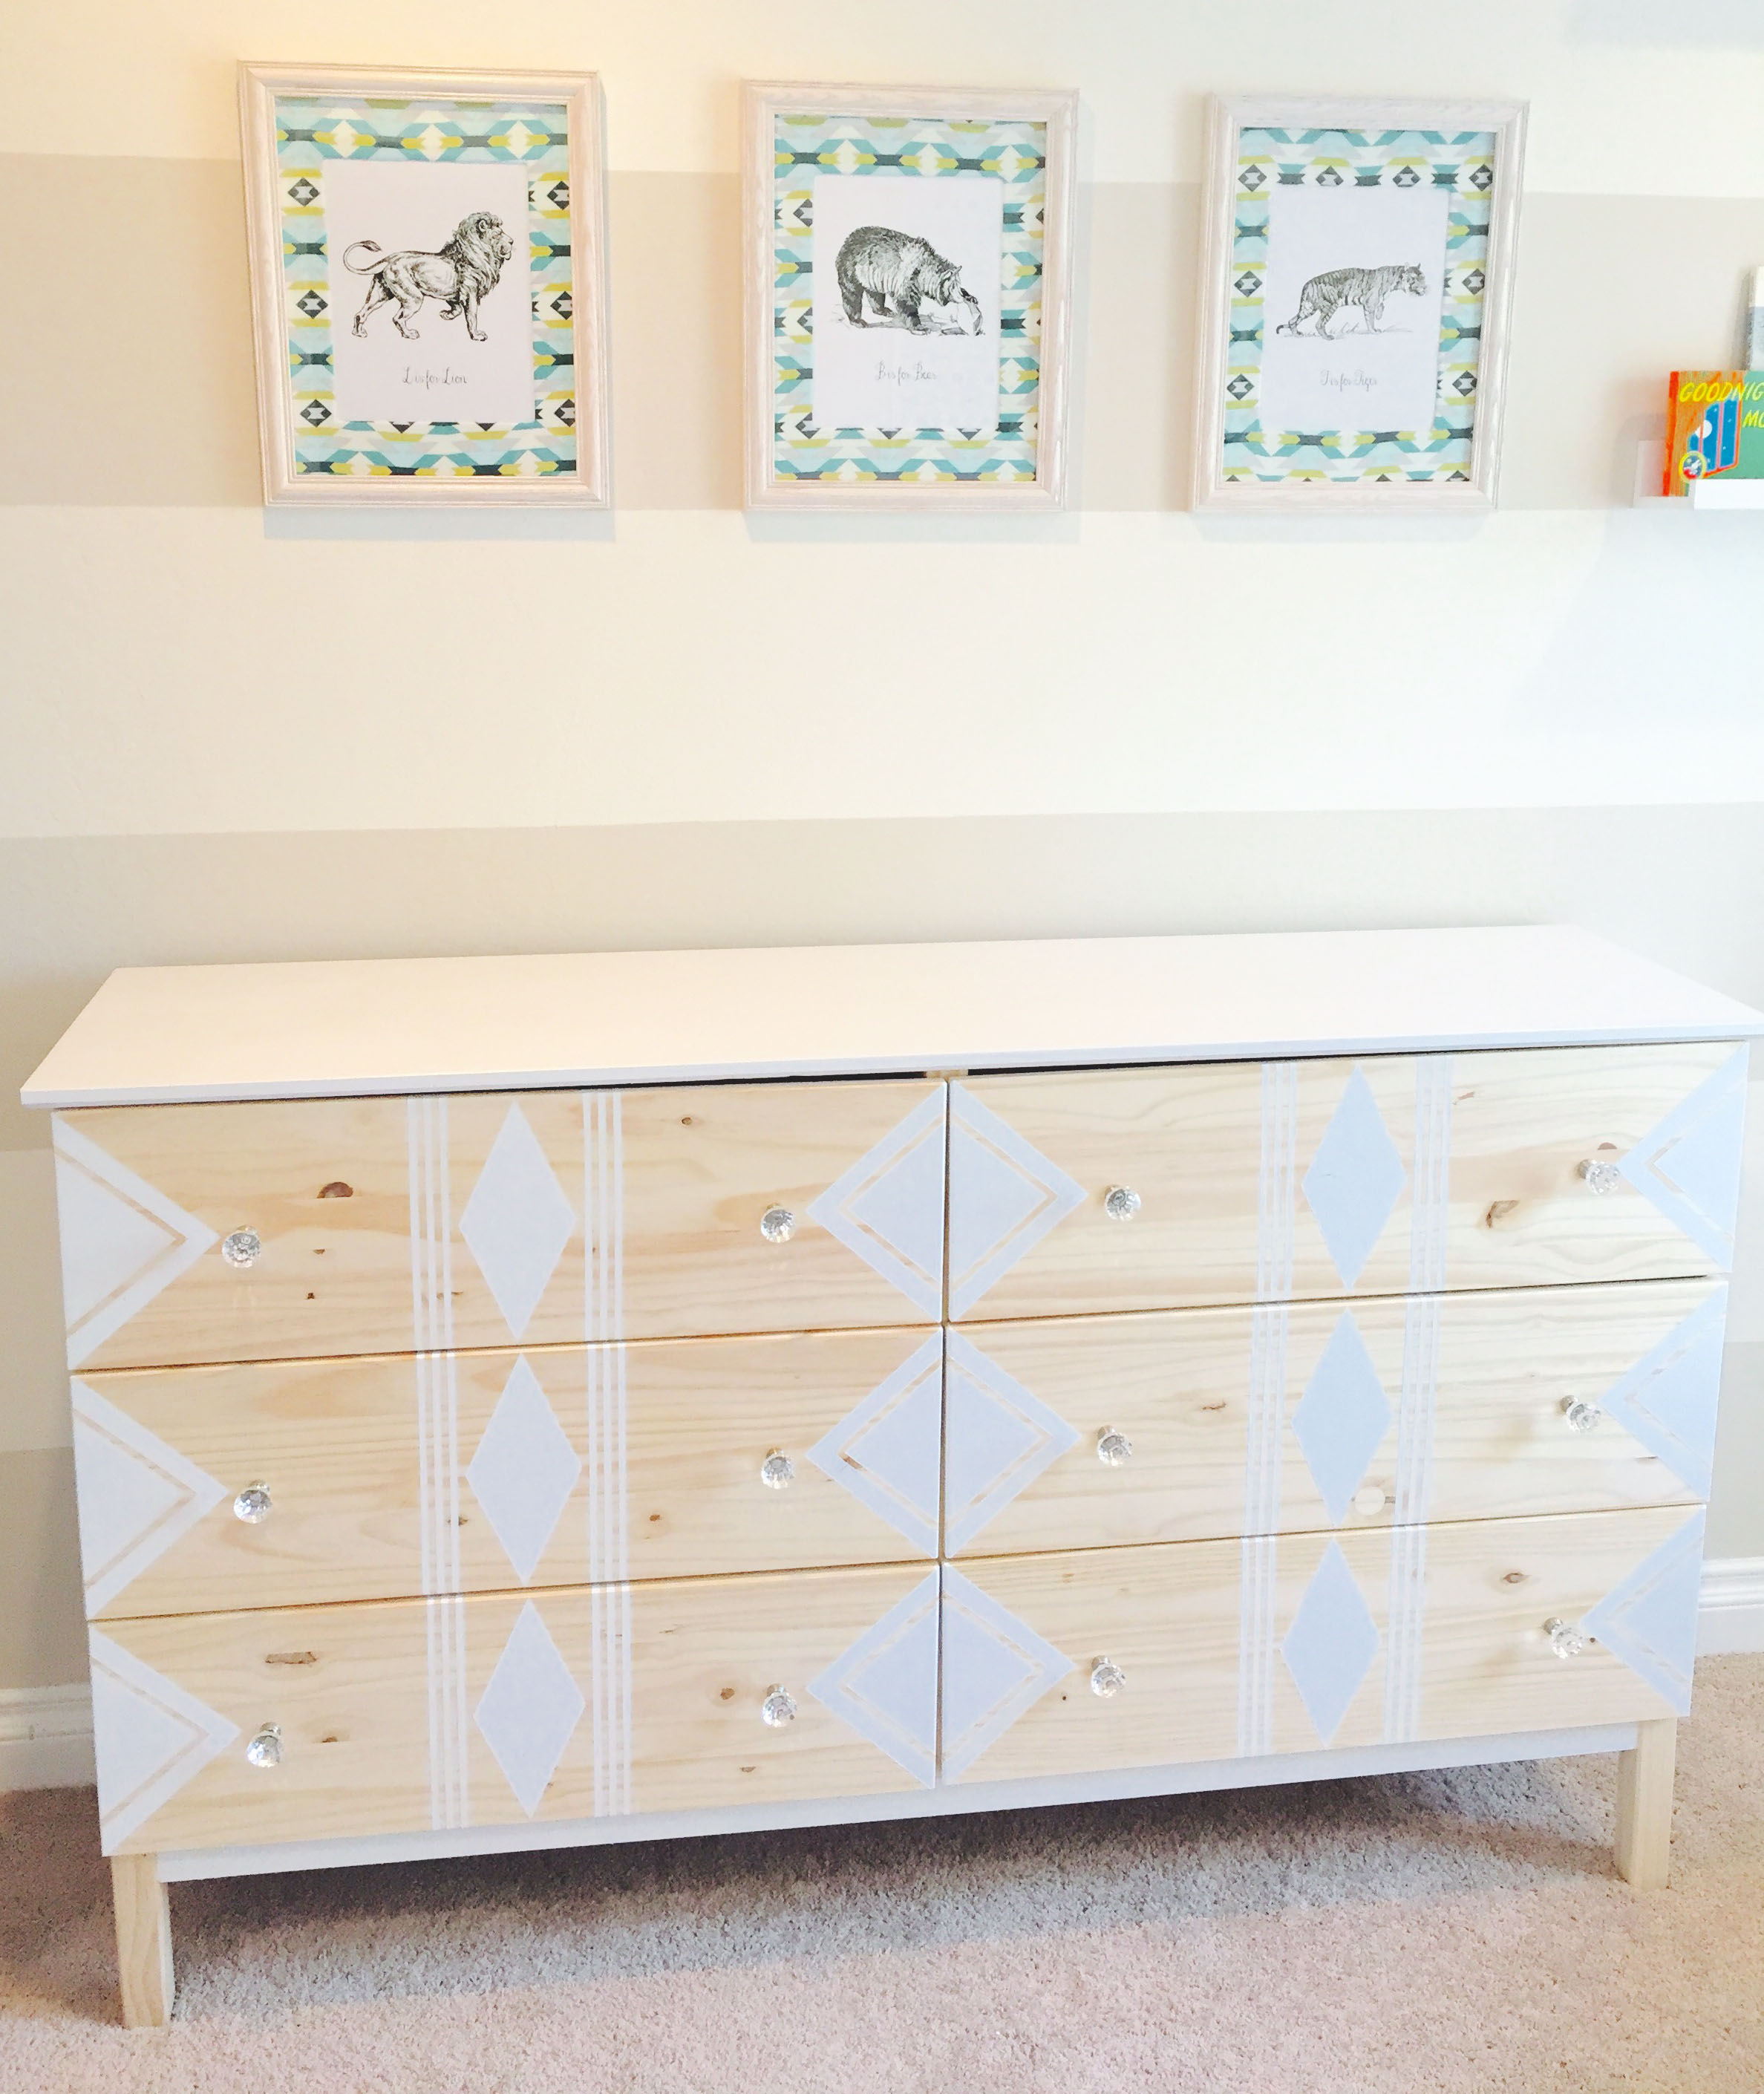 Ikea Teppich 3x3m Kind Ikea Elegant Reference C Table Ikea Styling Up Your Schrank